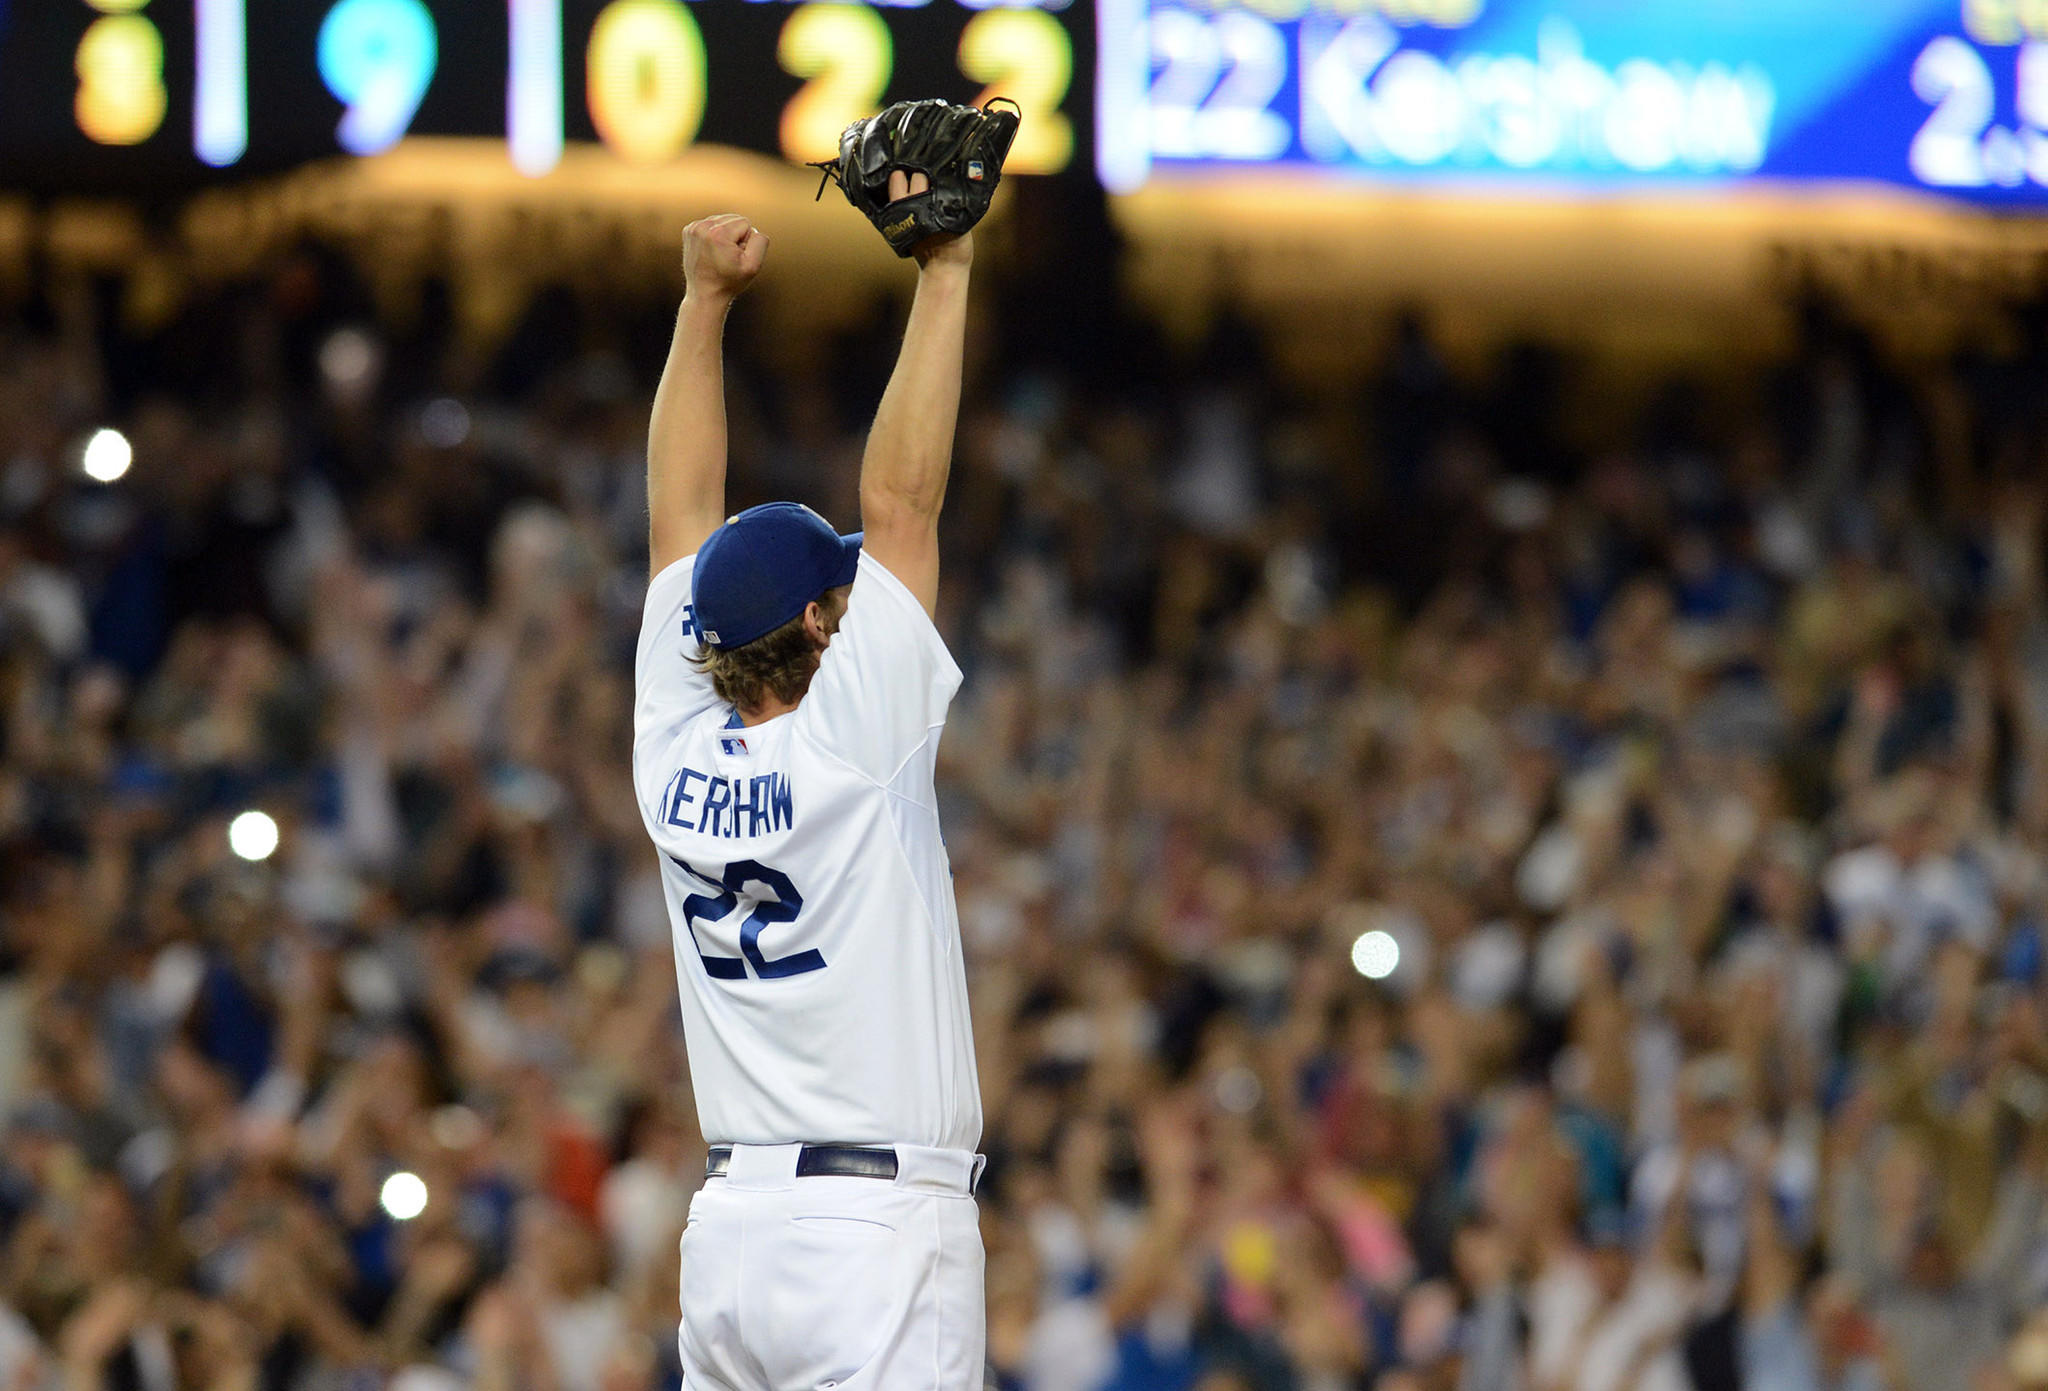 Dodgers starting pitcher Clayton Kershaw celebrates after recording the final out of his no-hitter against the Rockies at Dodger Stadium.